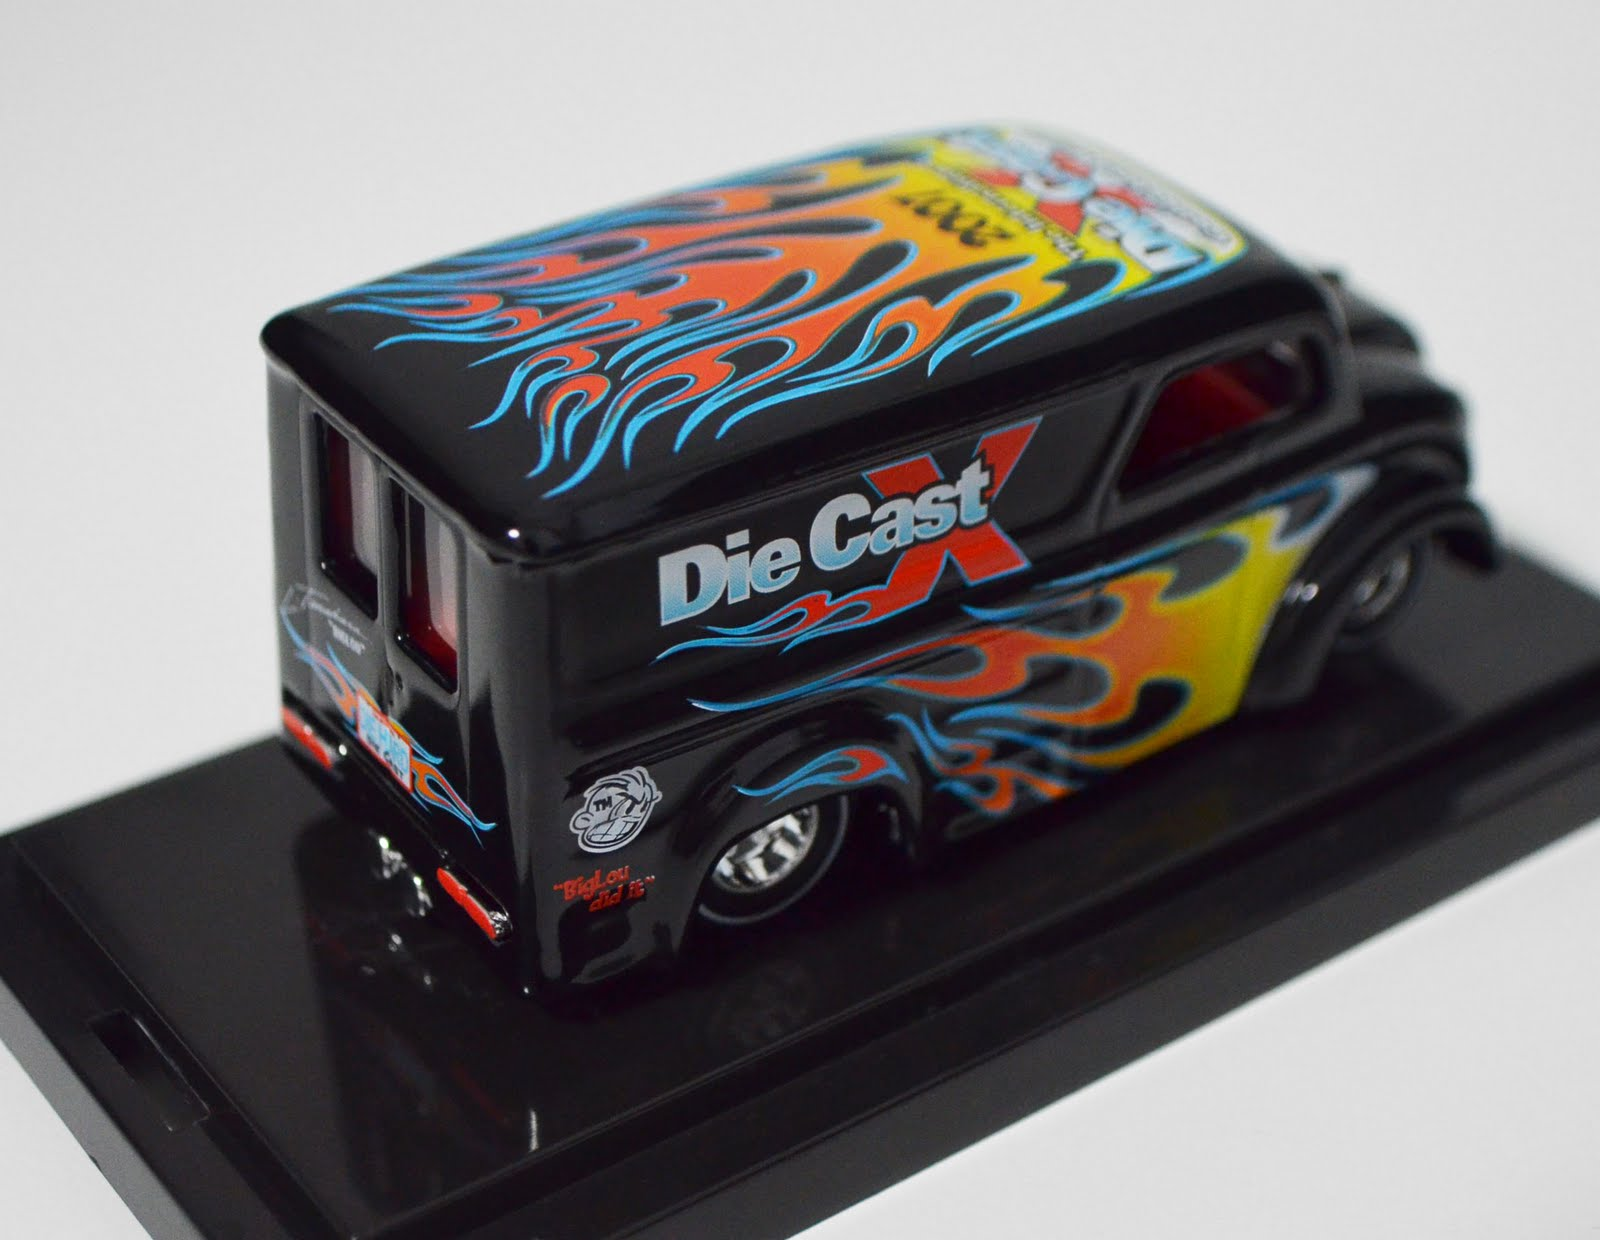 diecast space super convention dairy delivery - HD1600×1240